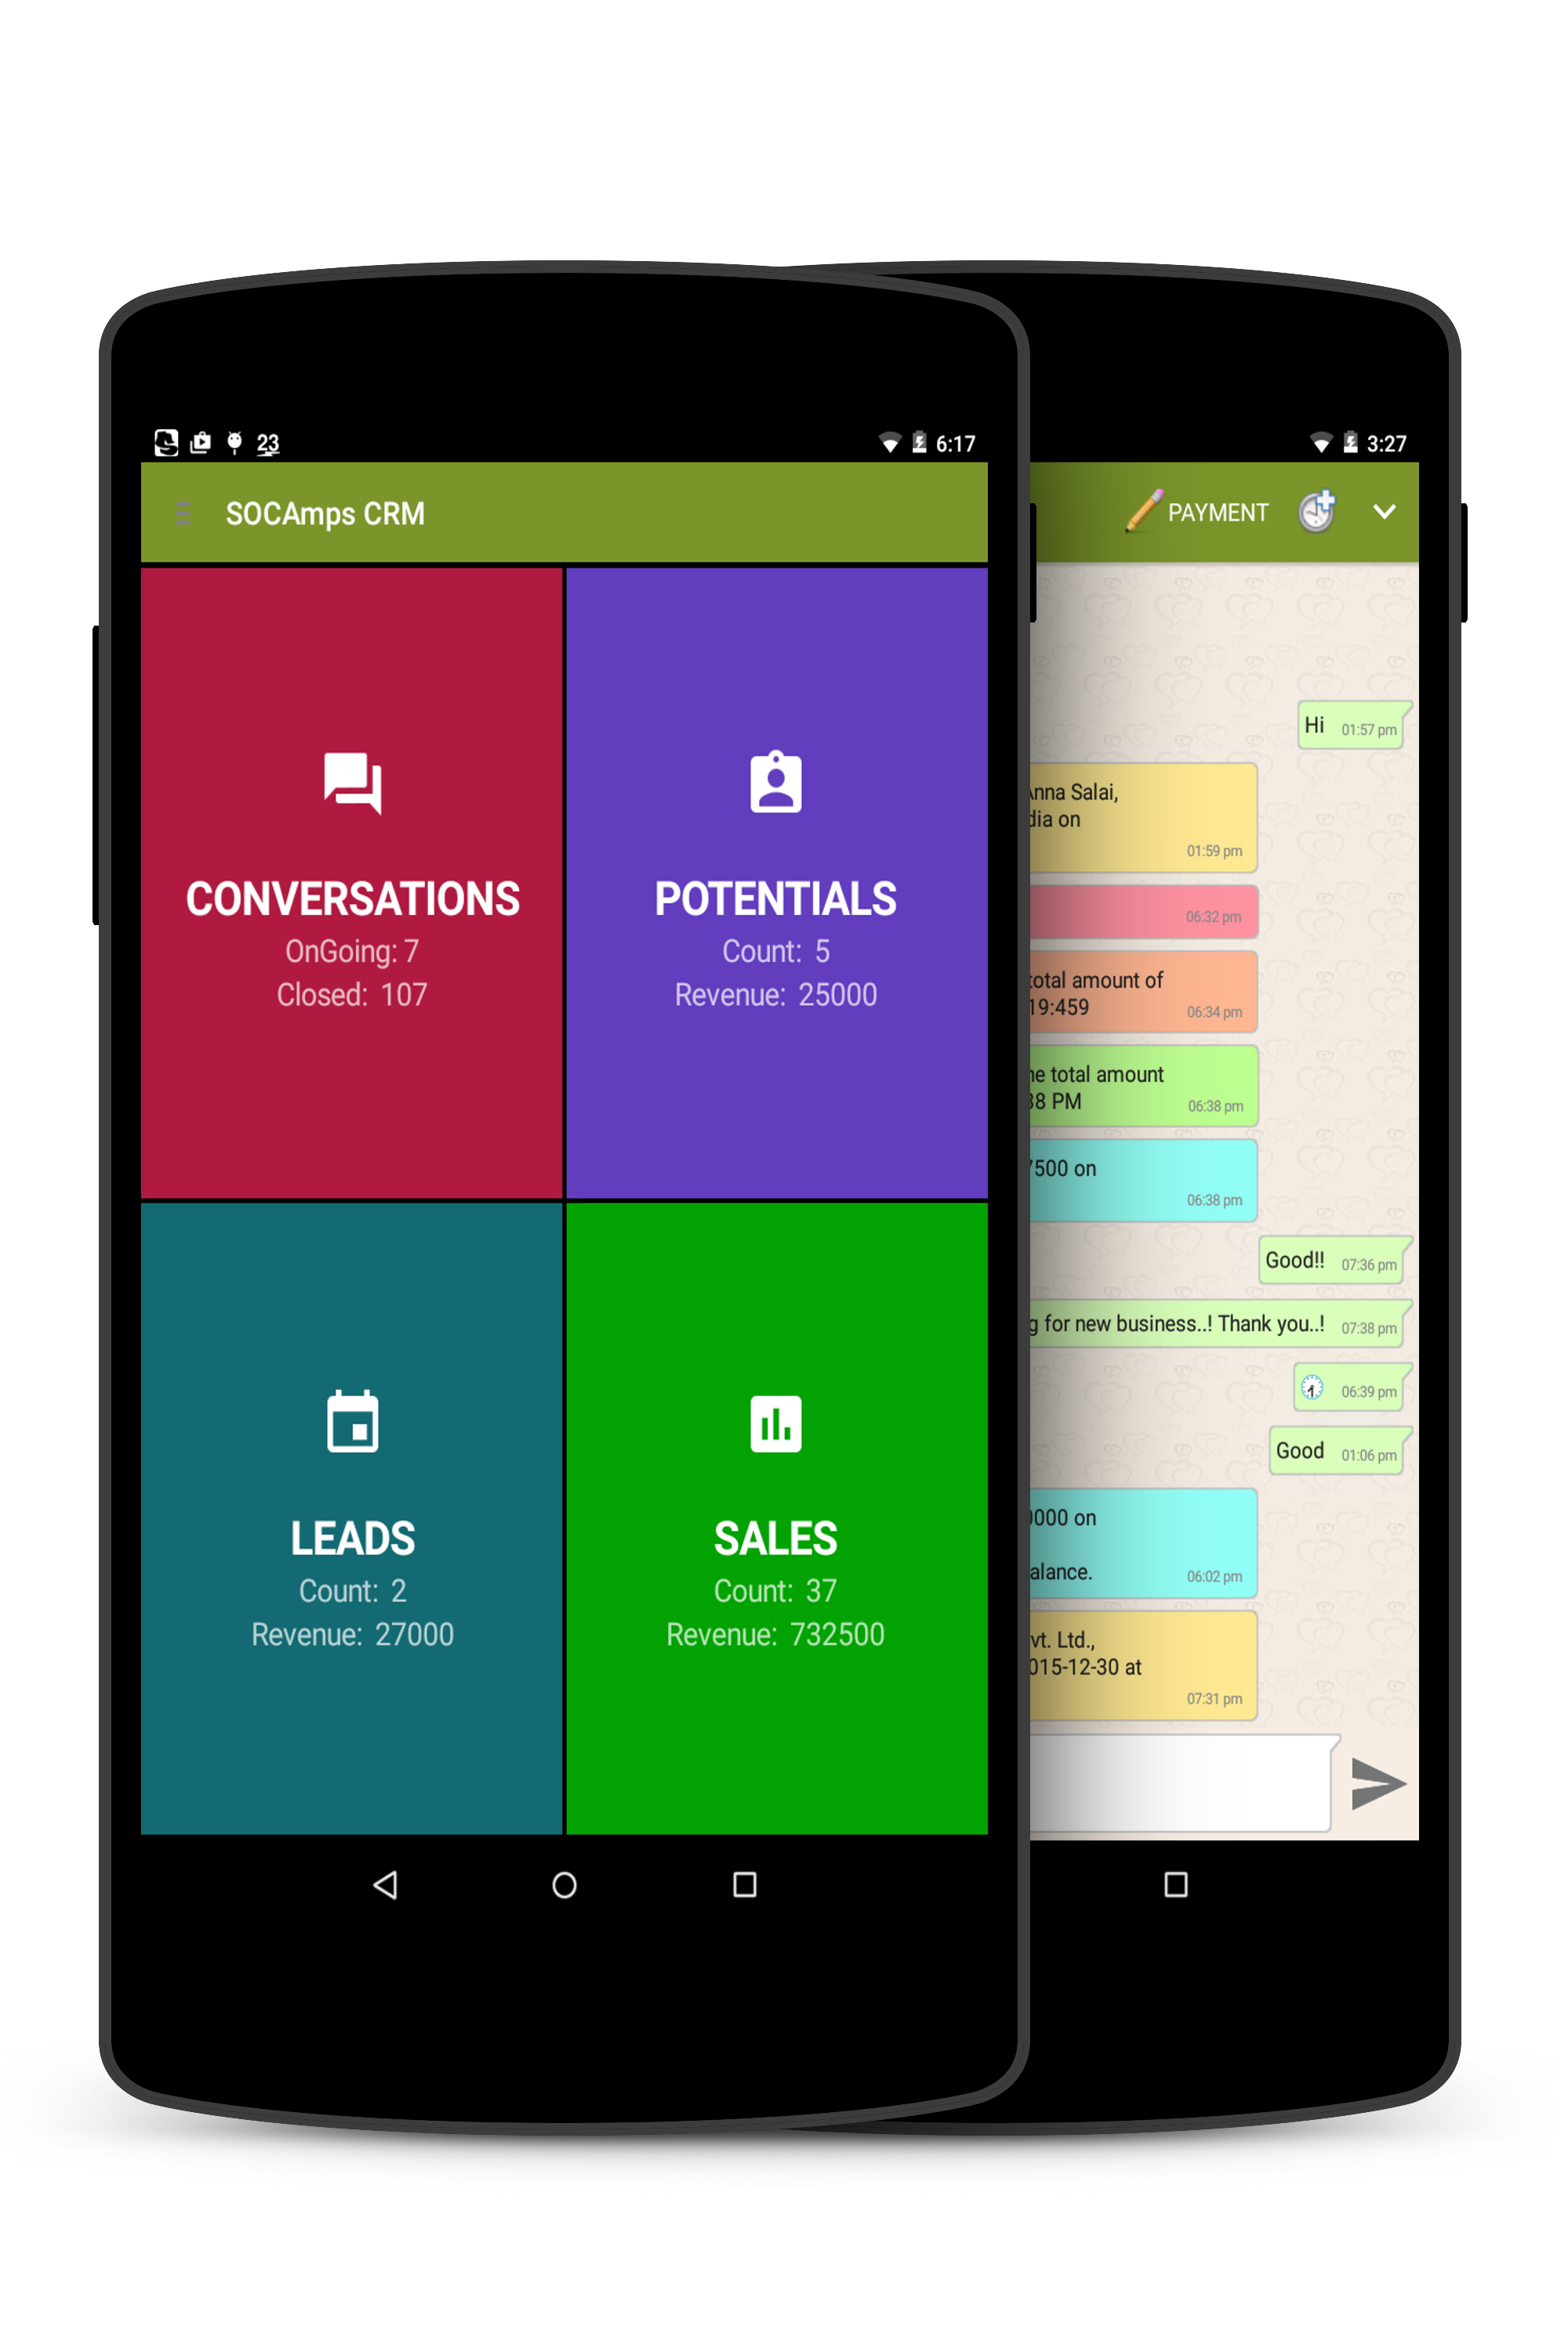 SOCAmps Mobile CRM Download